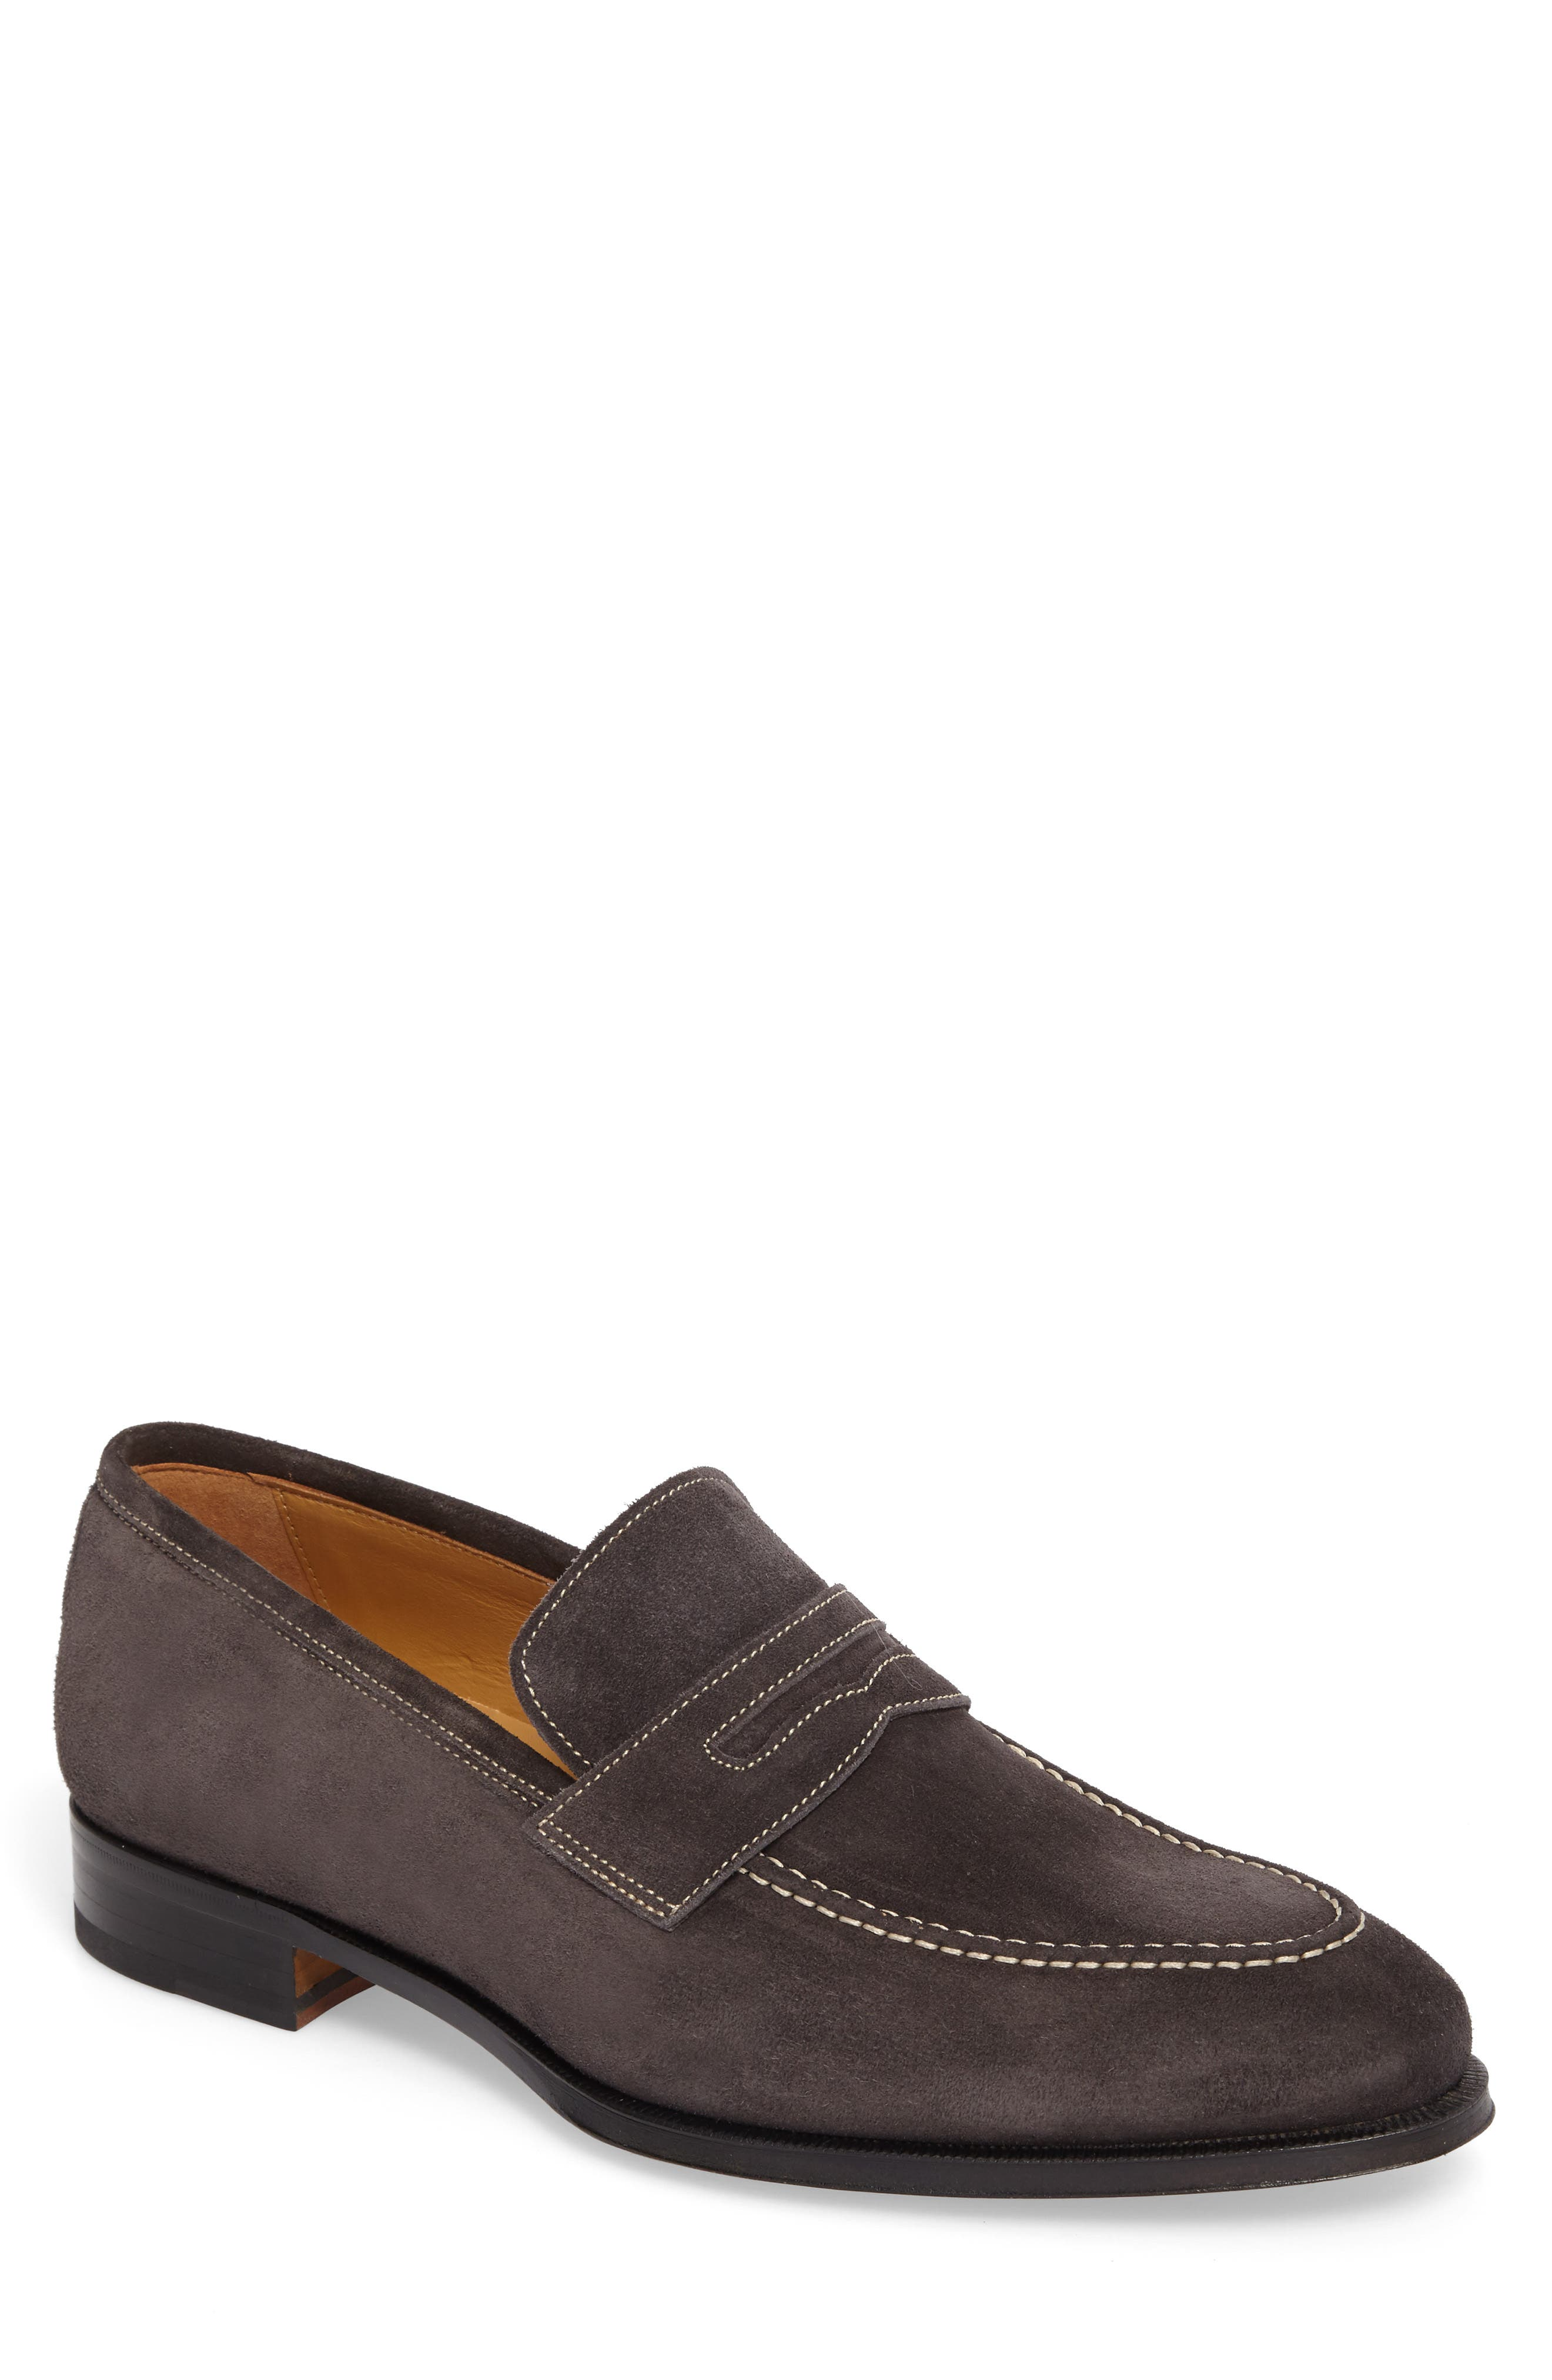 Leather Penny Loafer,                             Main thumbnail 1, color,